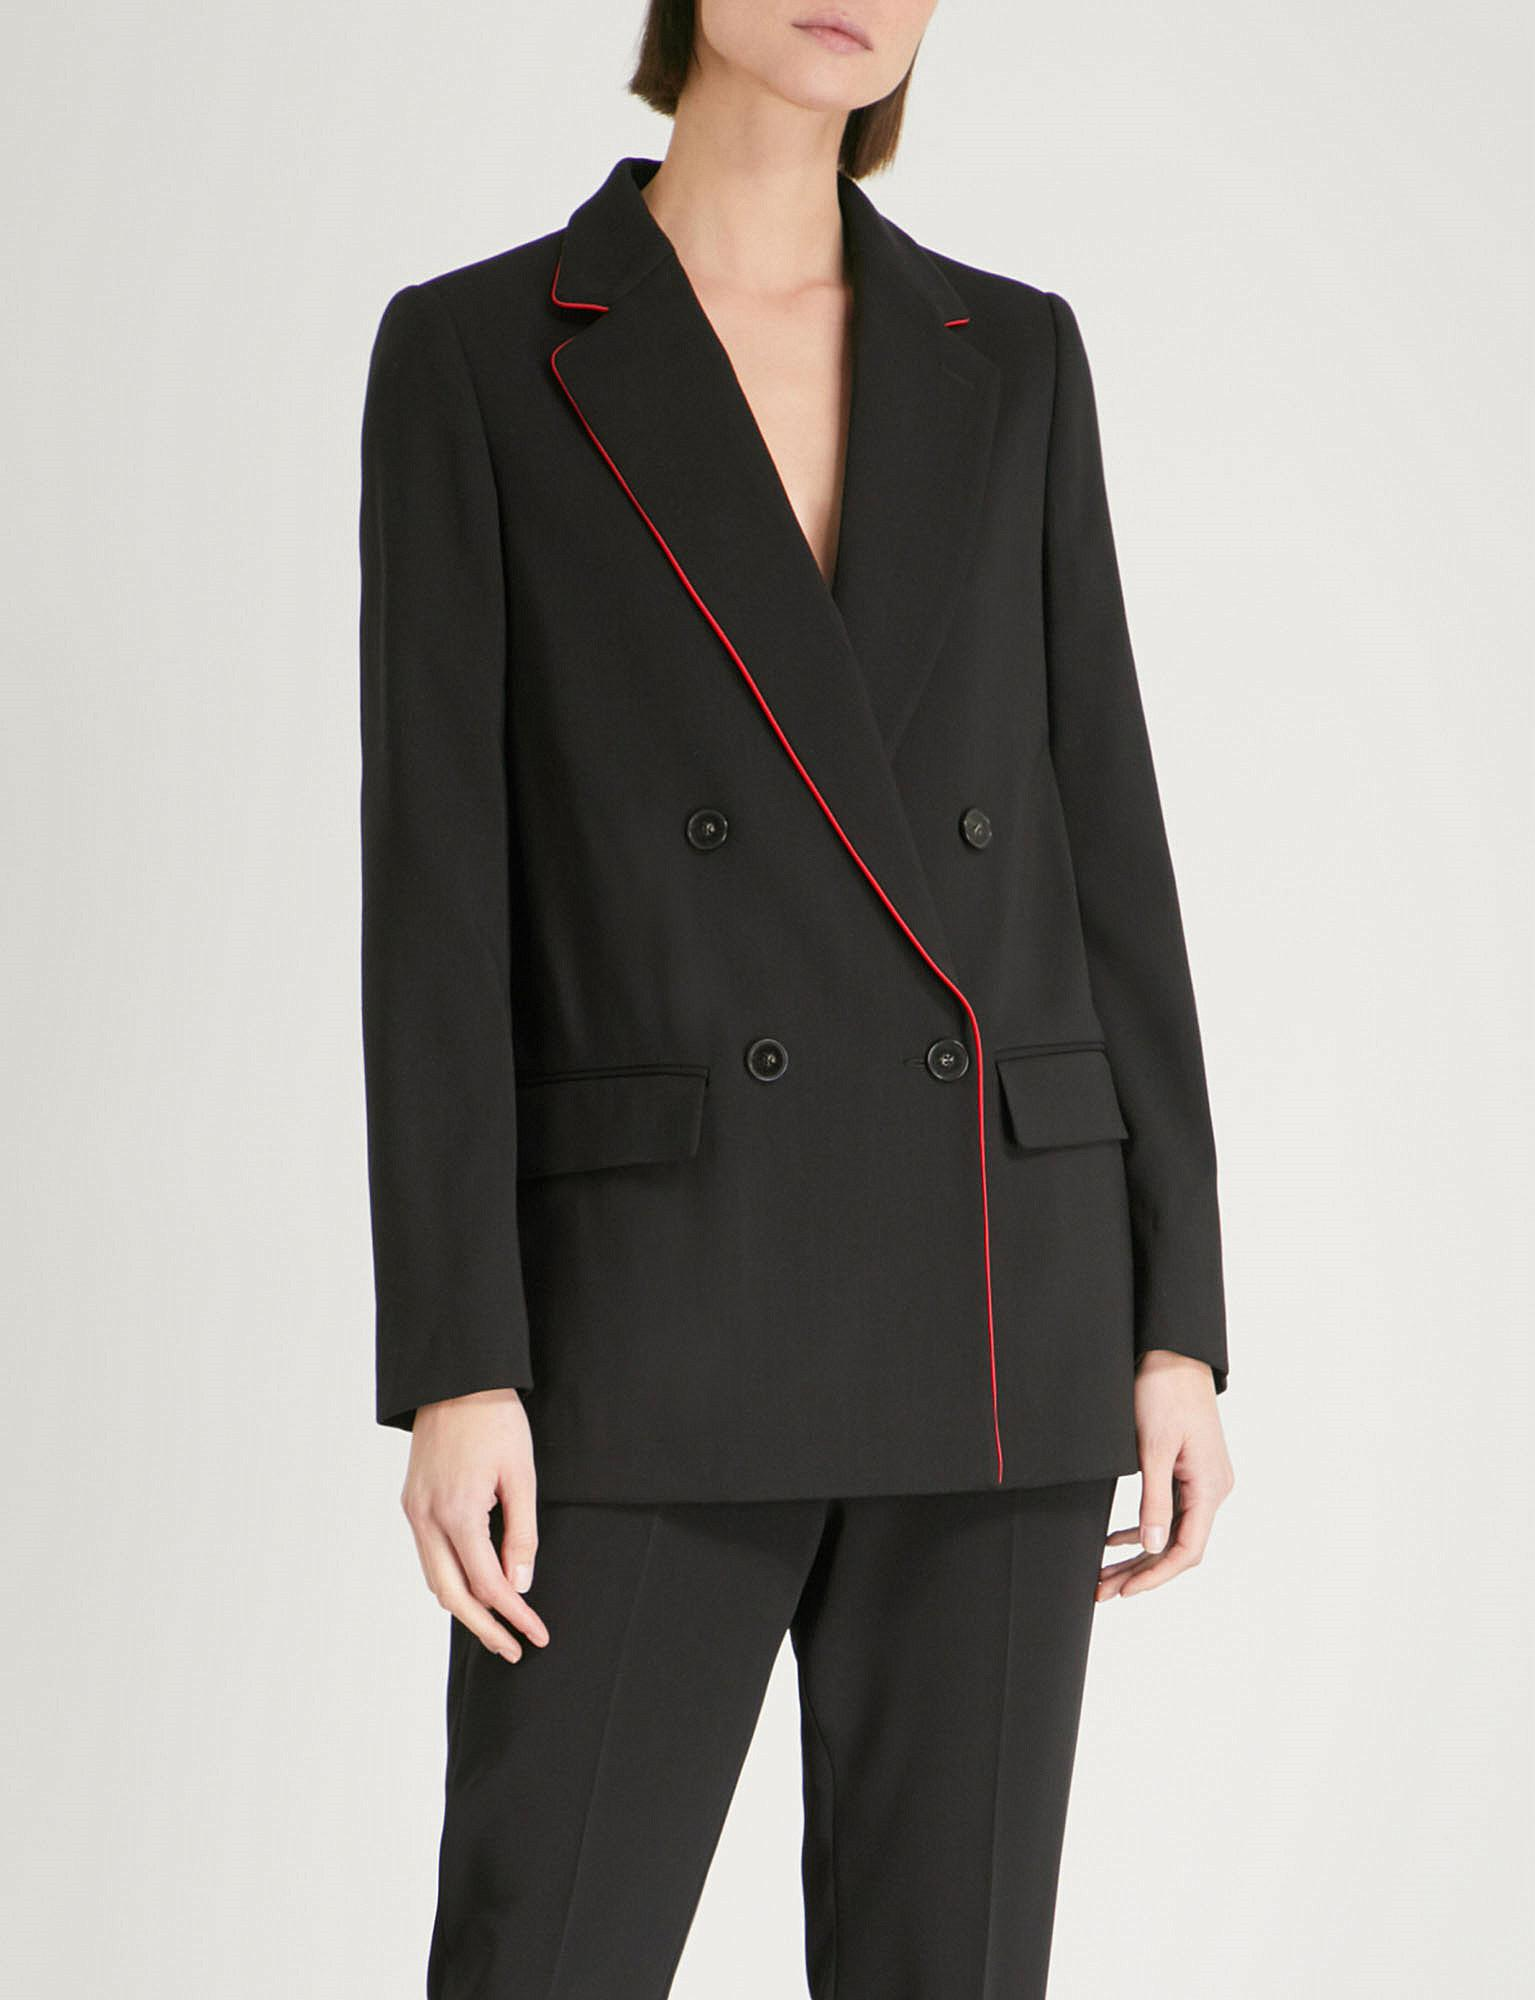 Collections Sale Online Milly tuxedo jacket - Black Stella McCartney From China Online Cheap Sale Fashion Style bBpCjgq